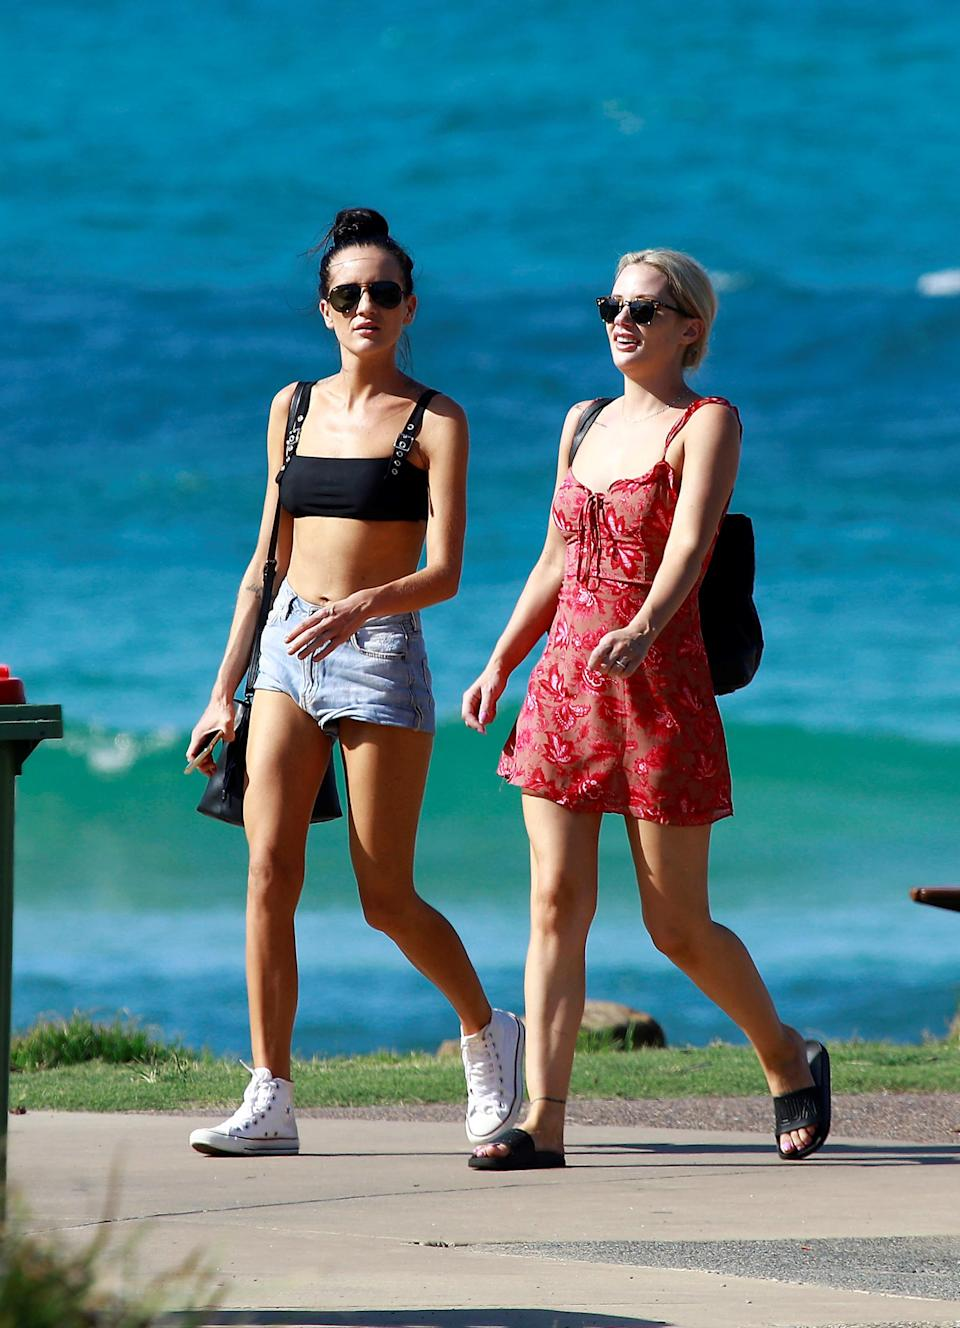 Ines and Jess kept their looks cute and casual. Photo: Diimex